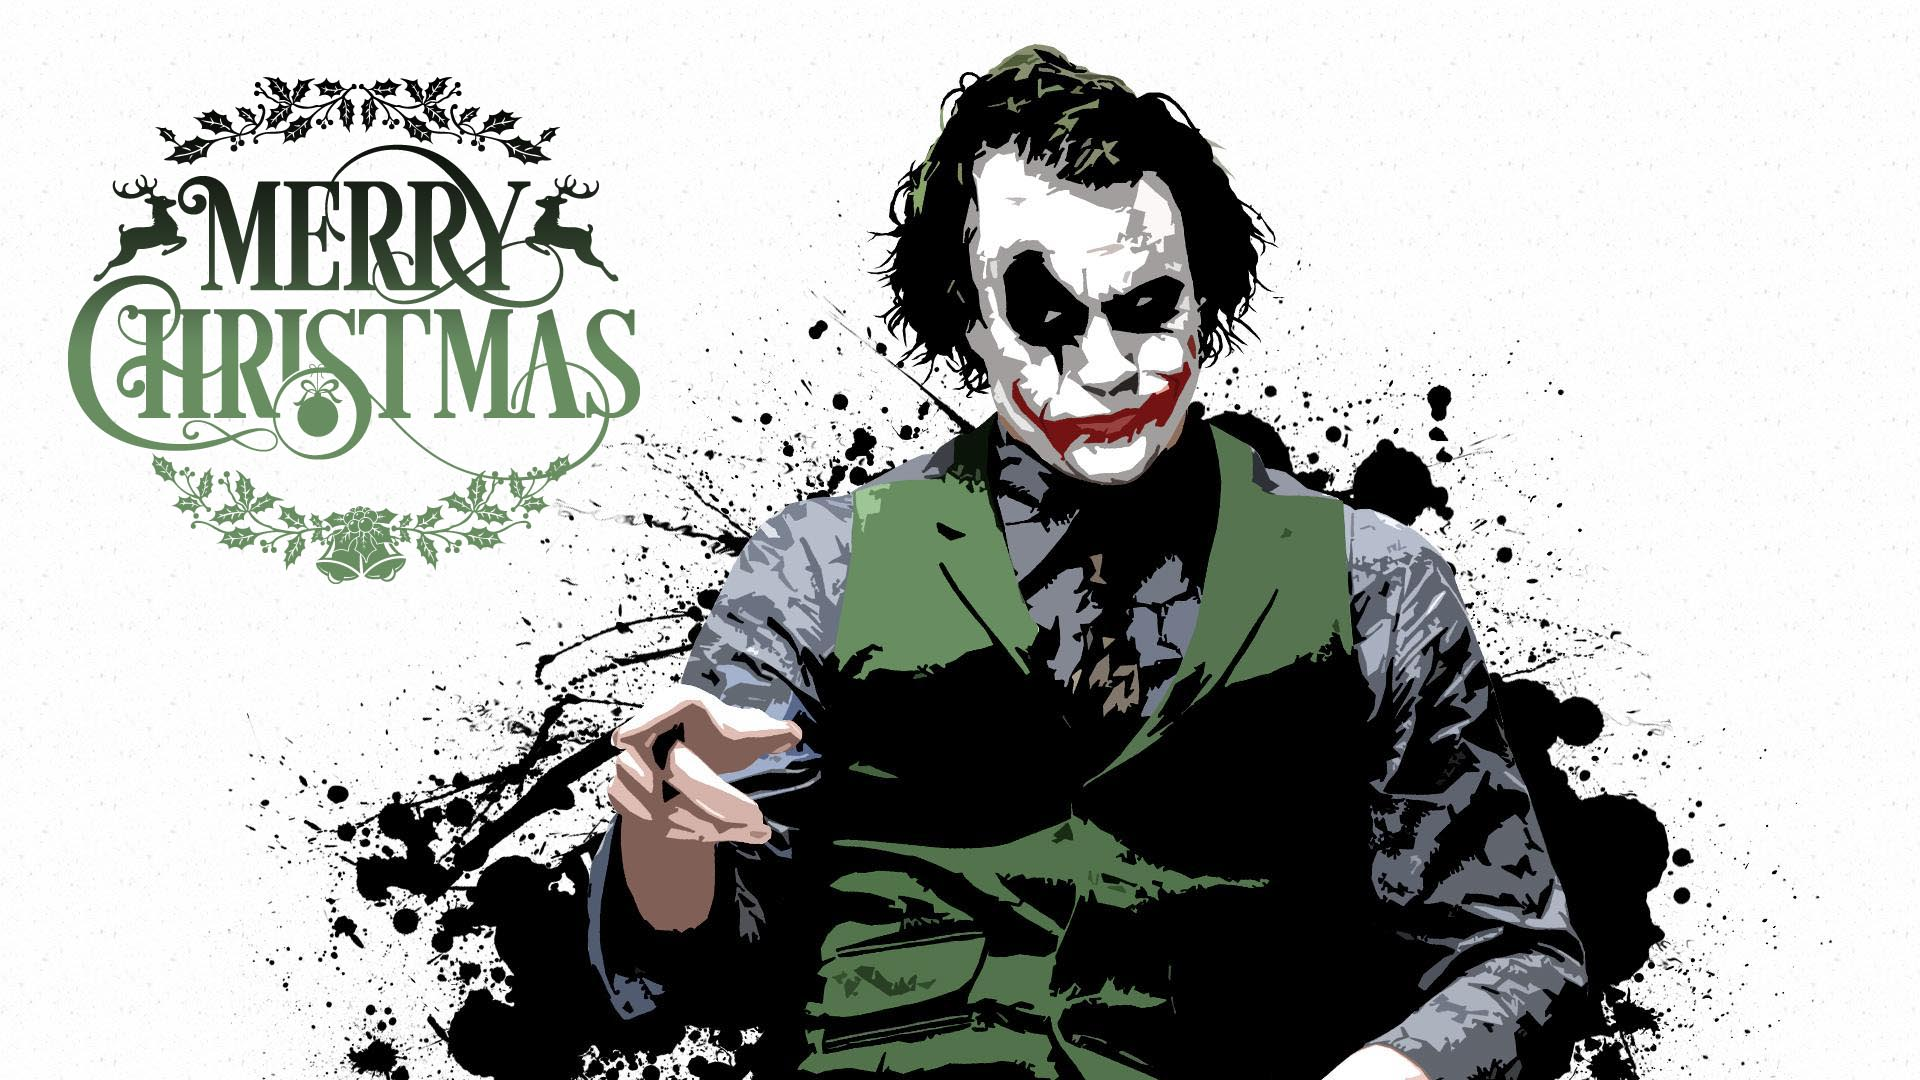 happy merry christmas wishes greetings joker hd desktop wallpaper